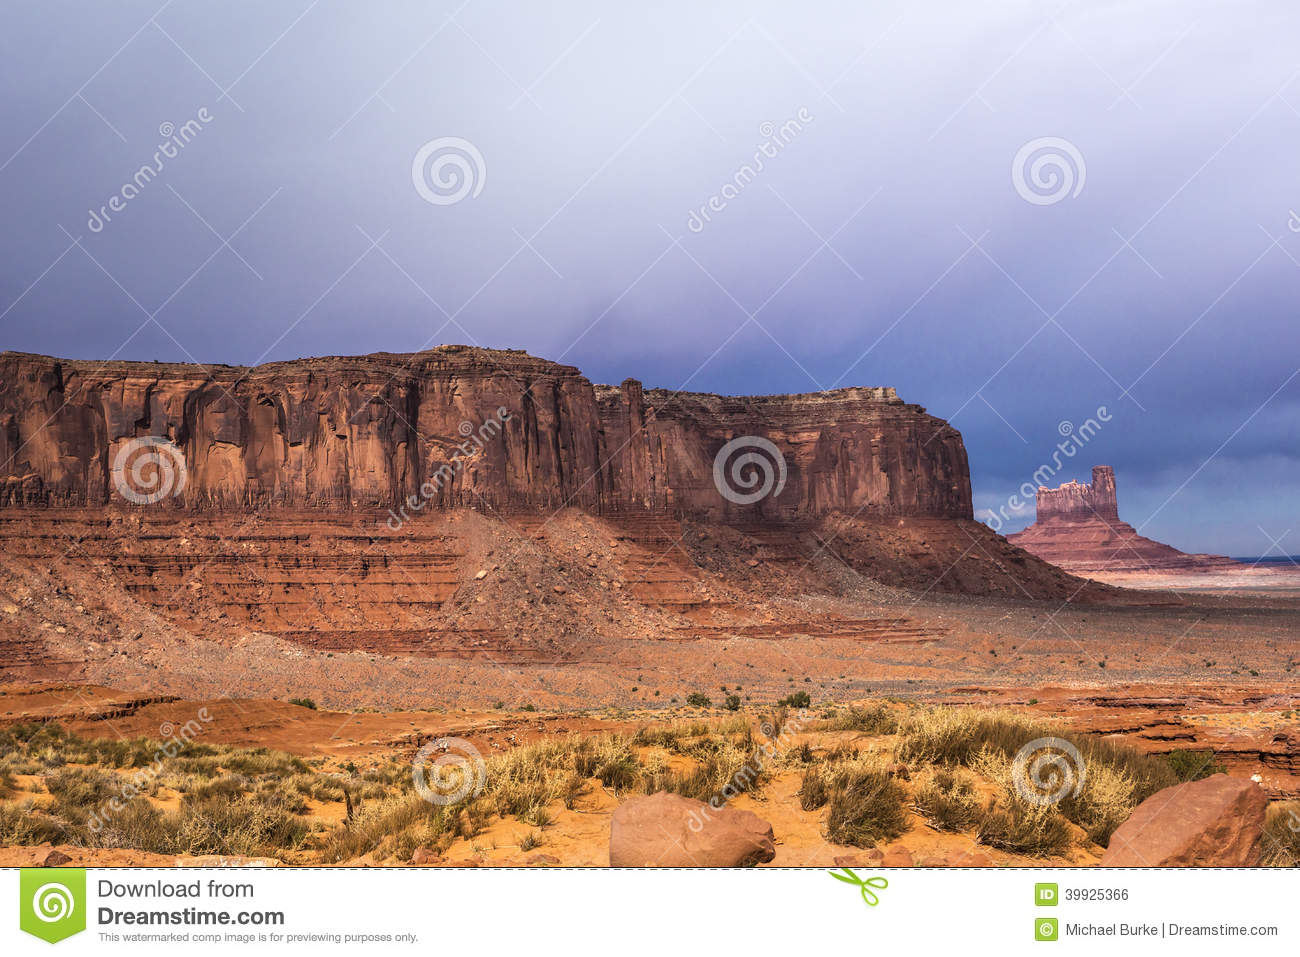 Colorado Plateau clipart #12, Download drawings